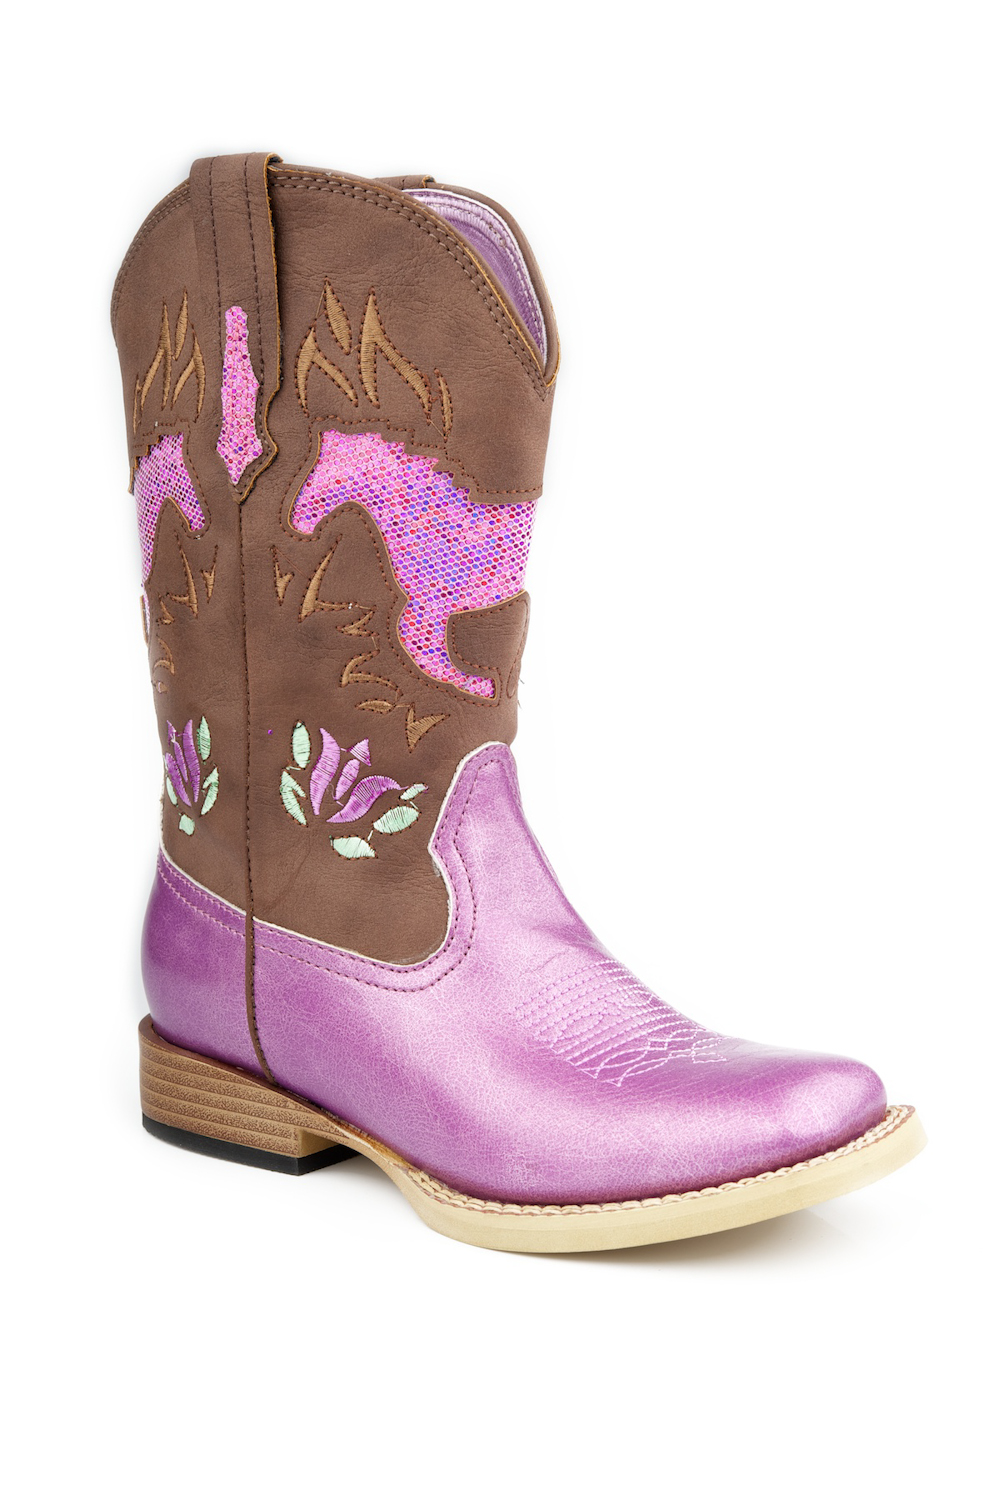 Cowboy boots for girls - deals on 1001 Blocks